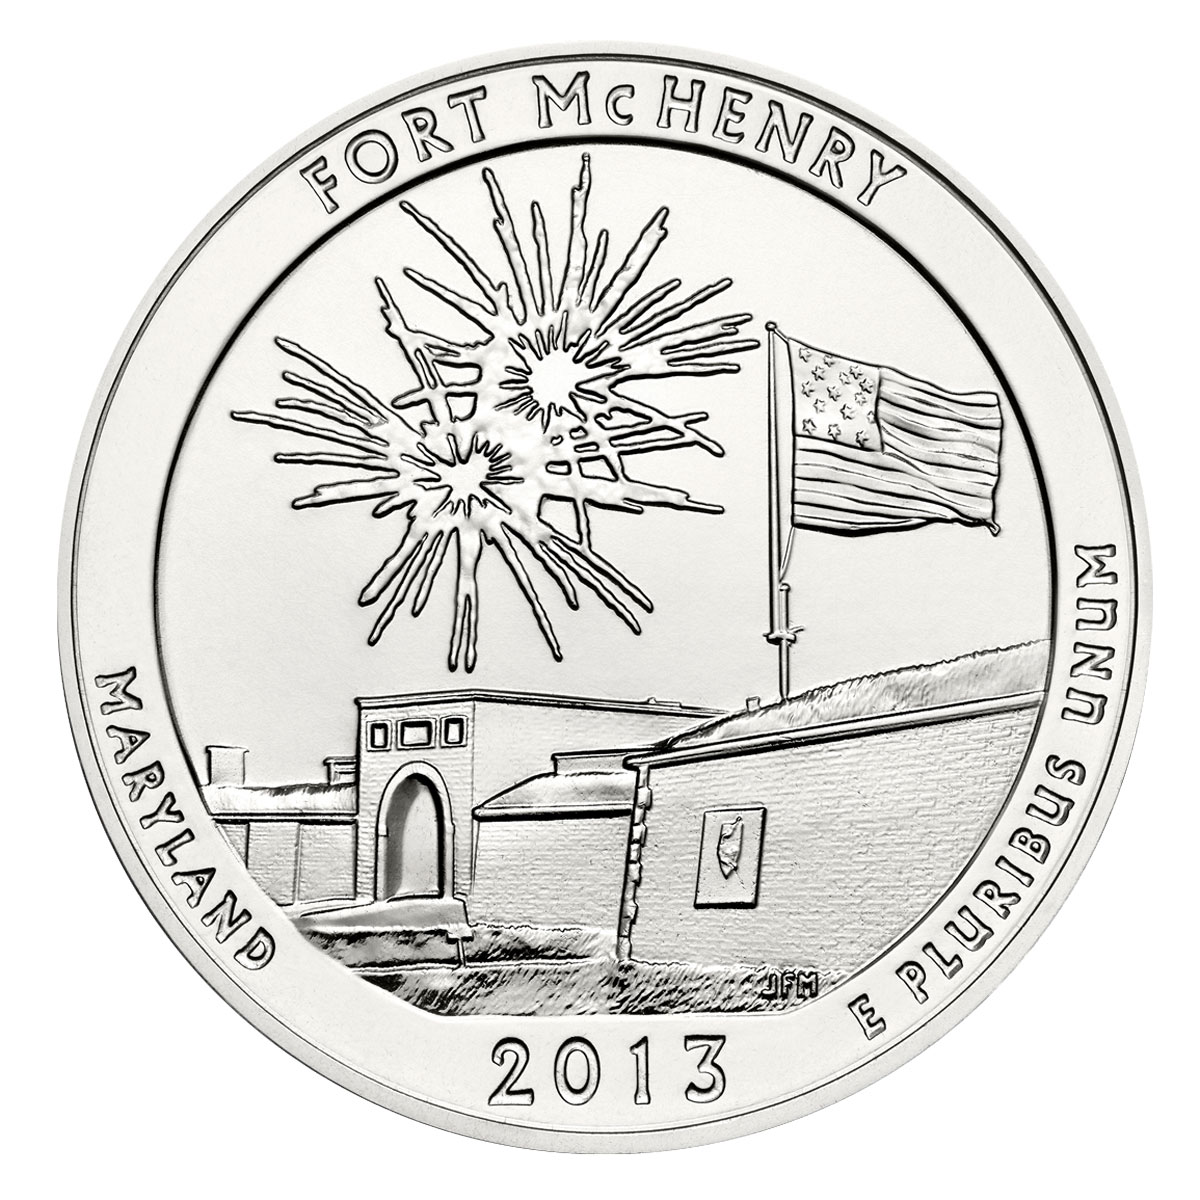 2013 Fort McHenry 5 oz. Silver America the Beautiful Coin GEM BU